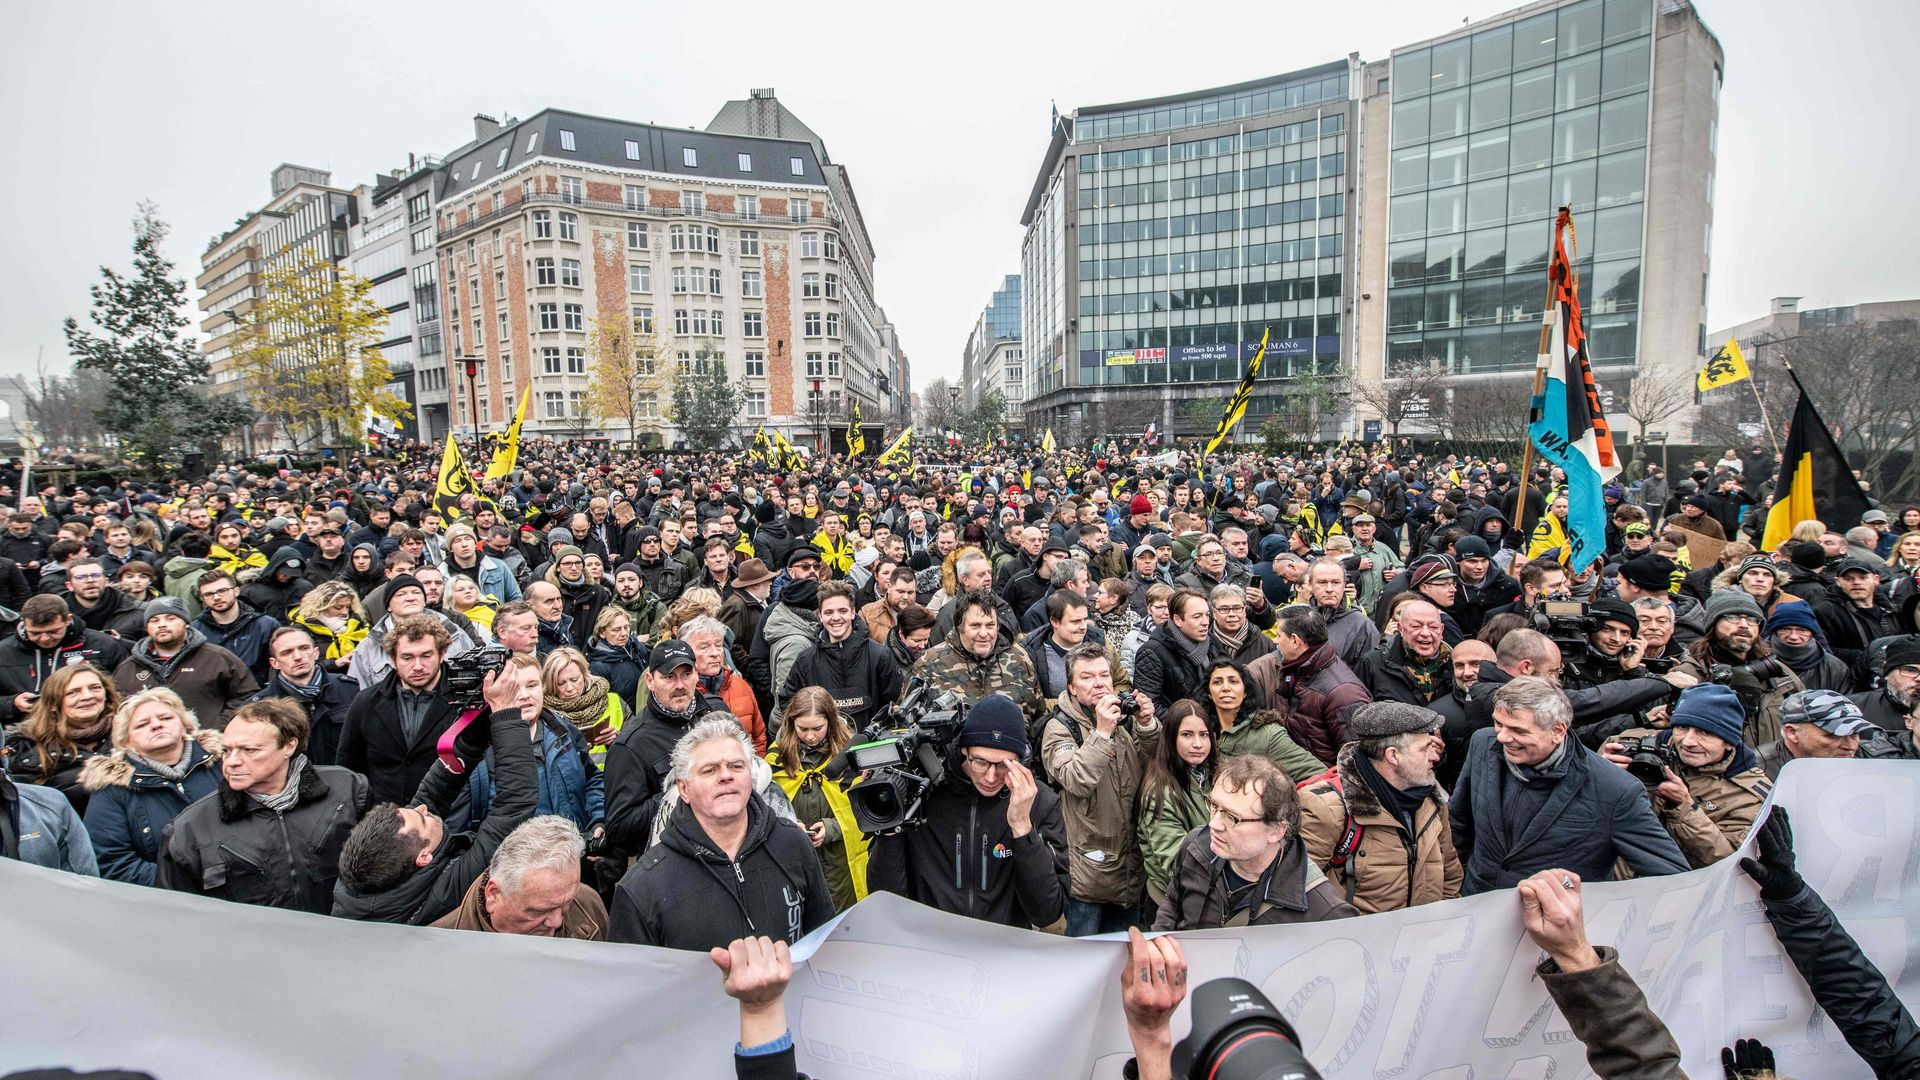 Protestors at a gathering called by the right-wing Flemish party Vlaams Belang and other organizations in Brussels against the UN Marrakech global pact on migration.